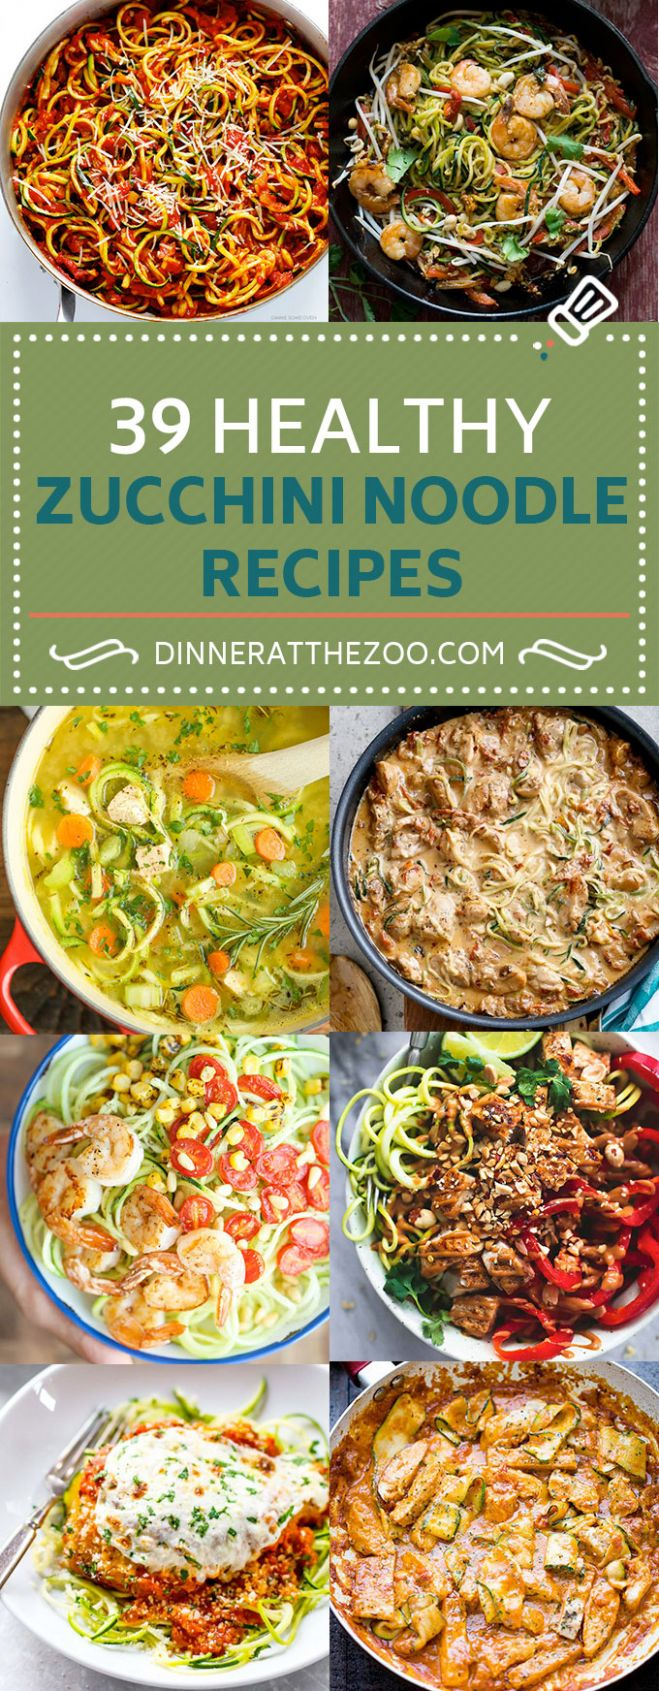 10 Healthy Zoodle (Zucchini Noodle) Recipes - Dinner at the Zoo